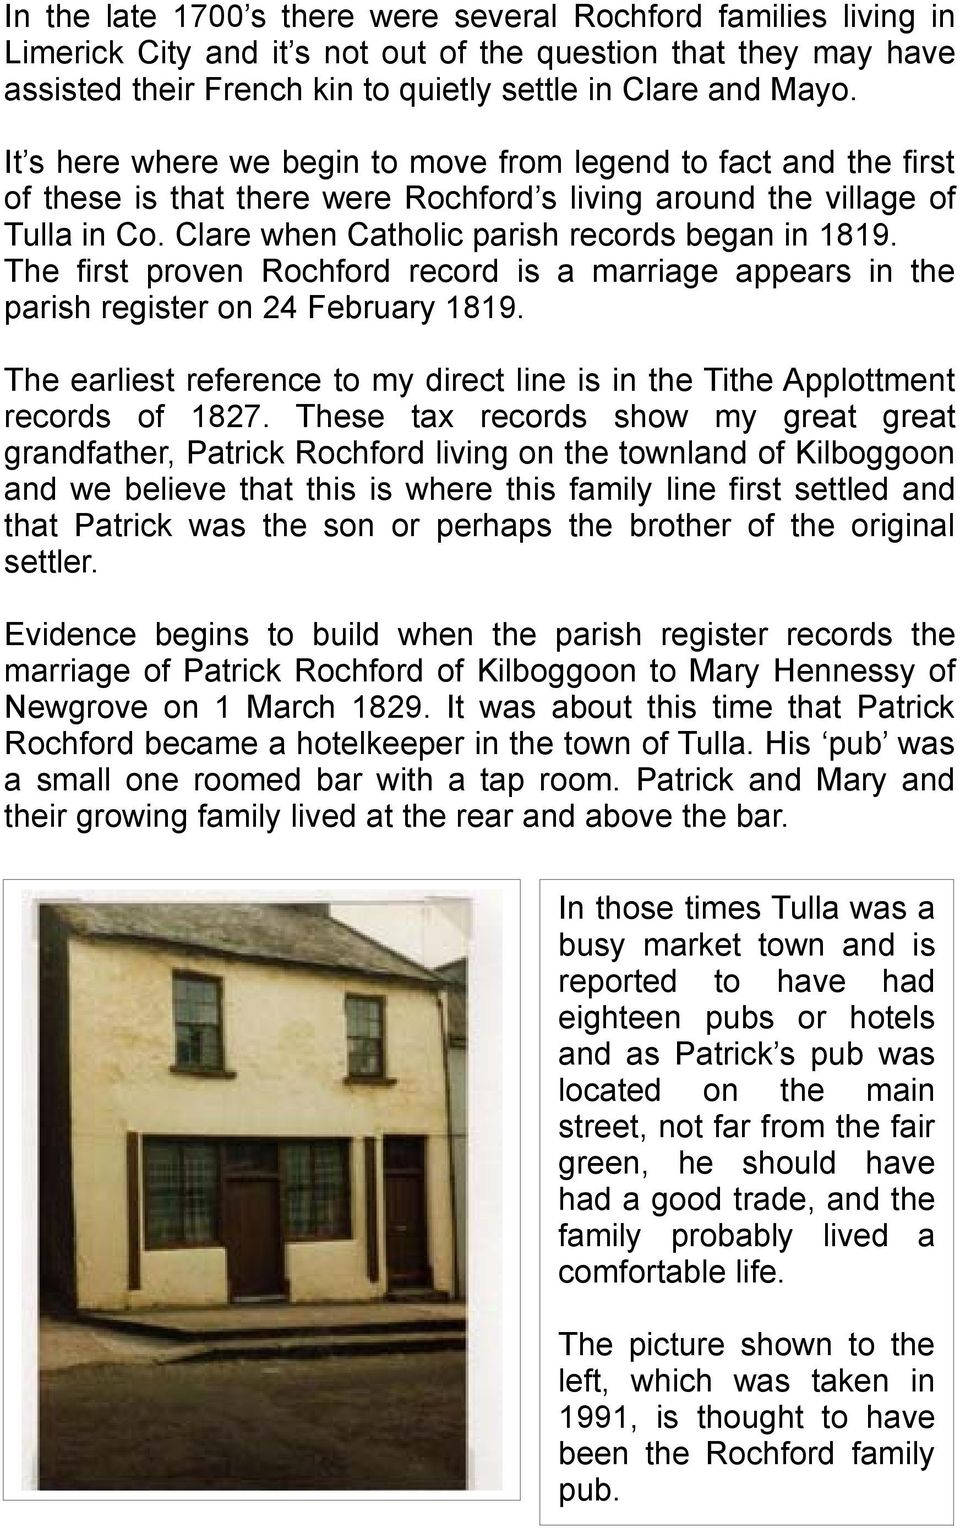 The first proven Rochford record is a marriage appears in the parish register on 24 February 1819. The earliest reference to my direct line is in the Tithe Applottment records of 1827.